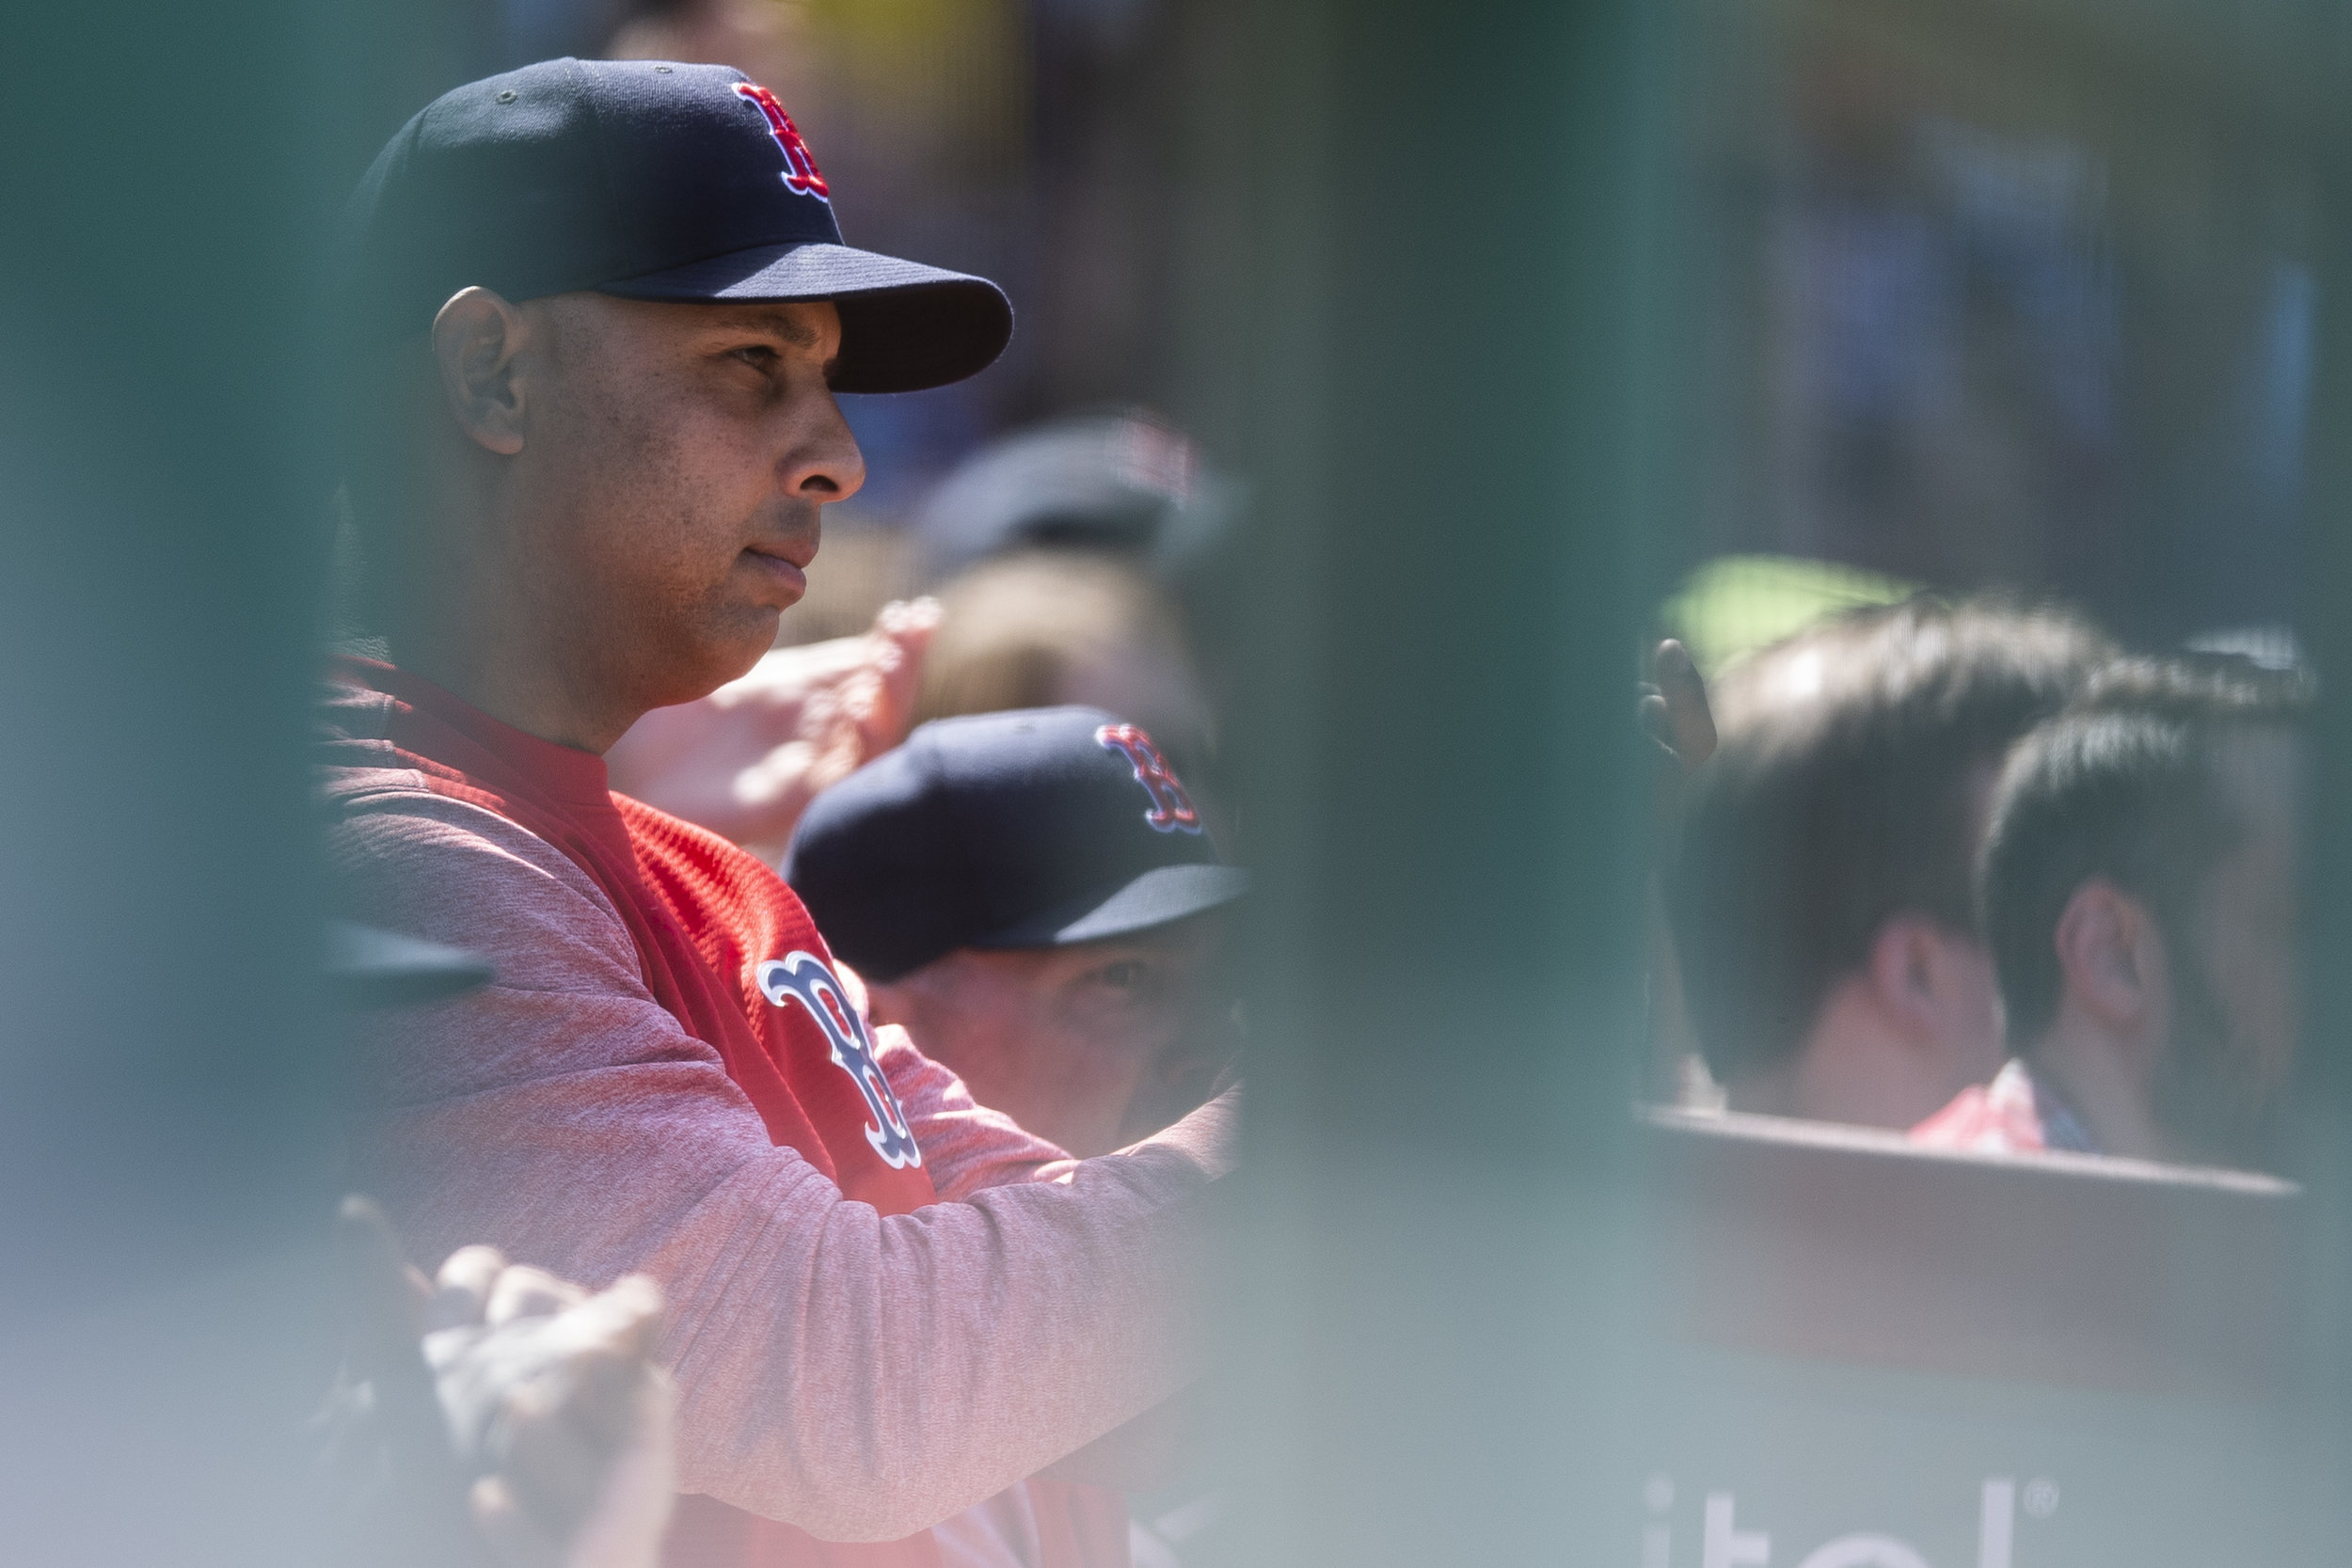 May 2, 2018, Boston, MA: Manager Alex Cora watches a replay from the dugout as the Boston Red Sox face the Kansas City Royals at Fenway Park in Boston, Massachusetts Wednesday, May 2, 2018. (Photo by Matthew Thomas/Boston Red Sox)